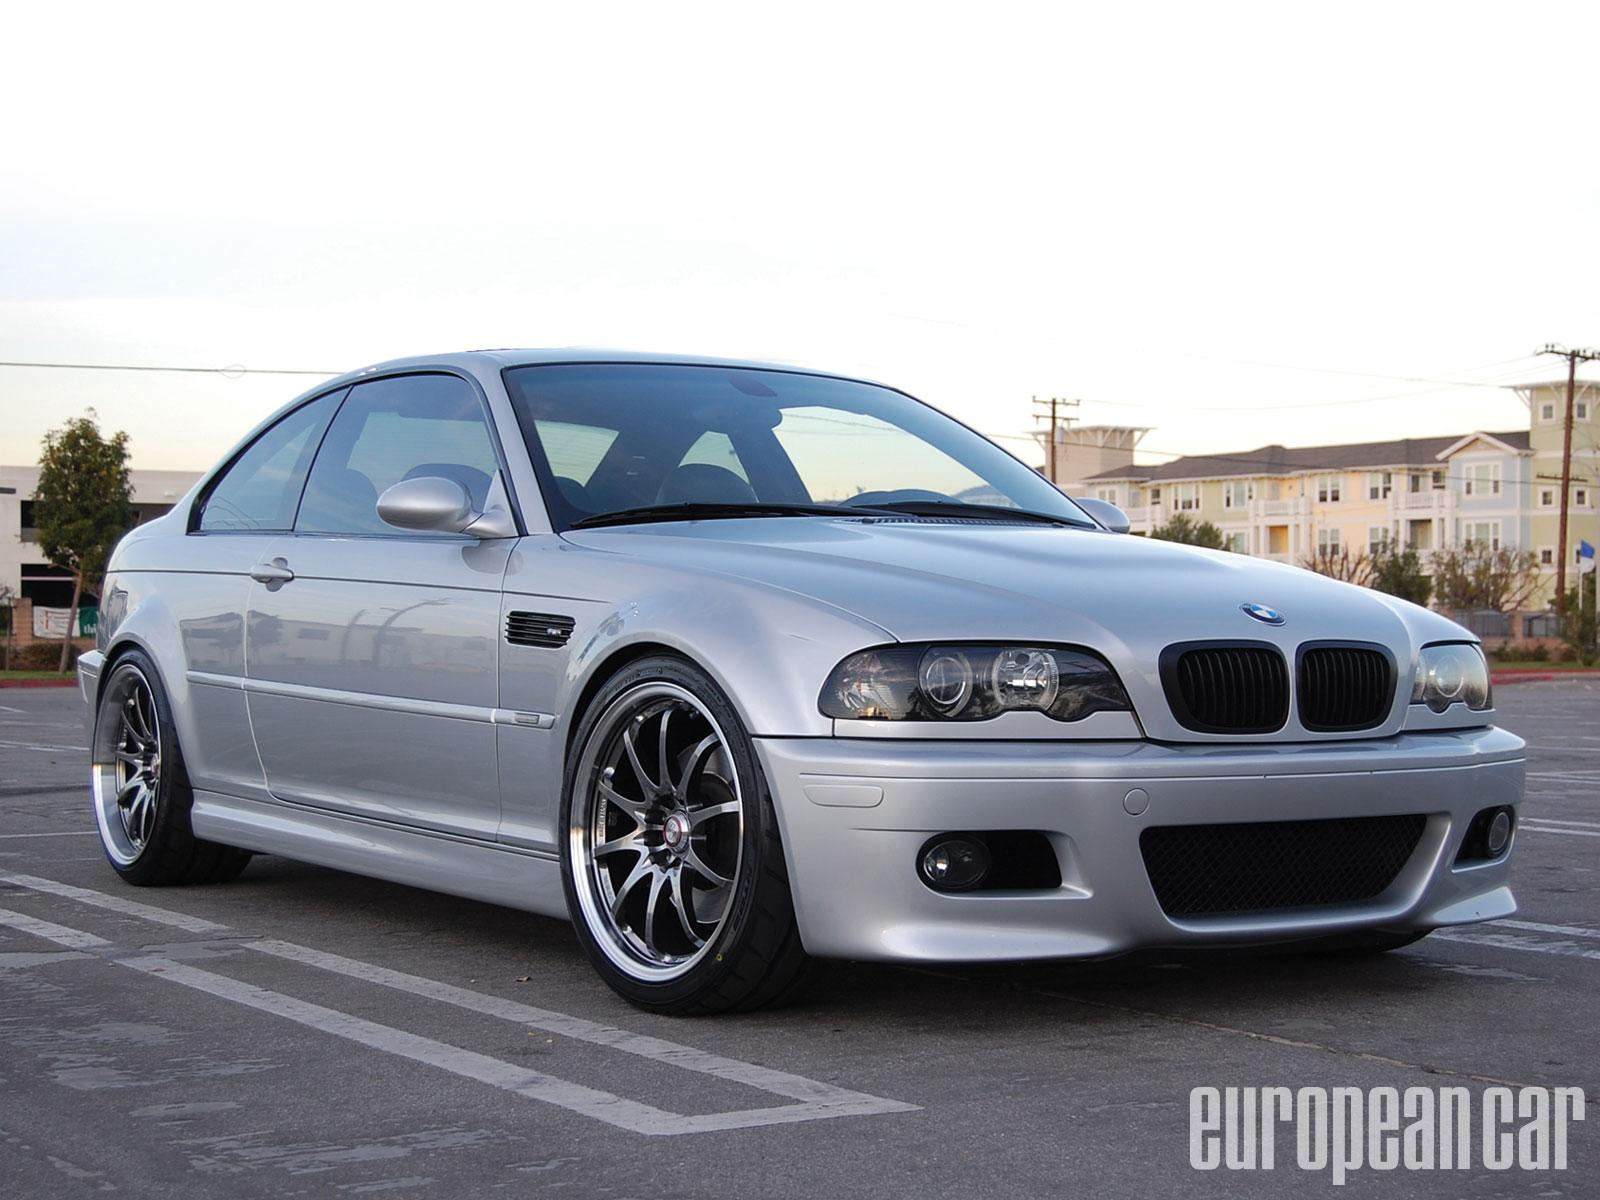 2003 bmw m3 information and photos zombiedrive. Black Bedroom Furniture Sets. Home Design Ideas